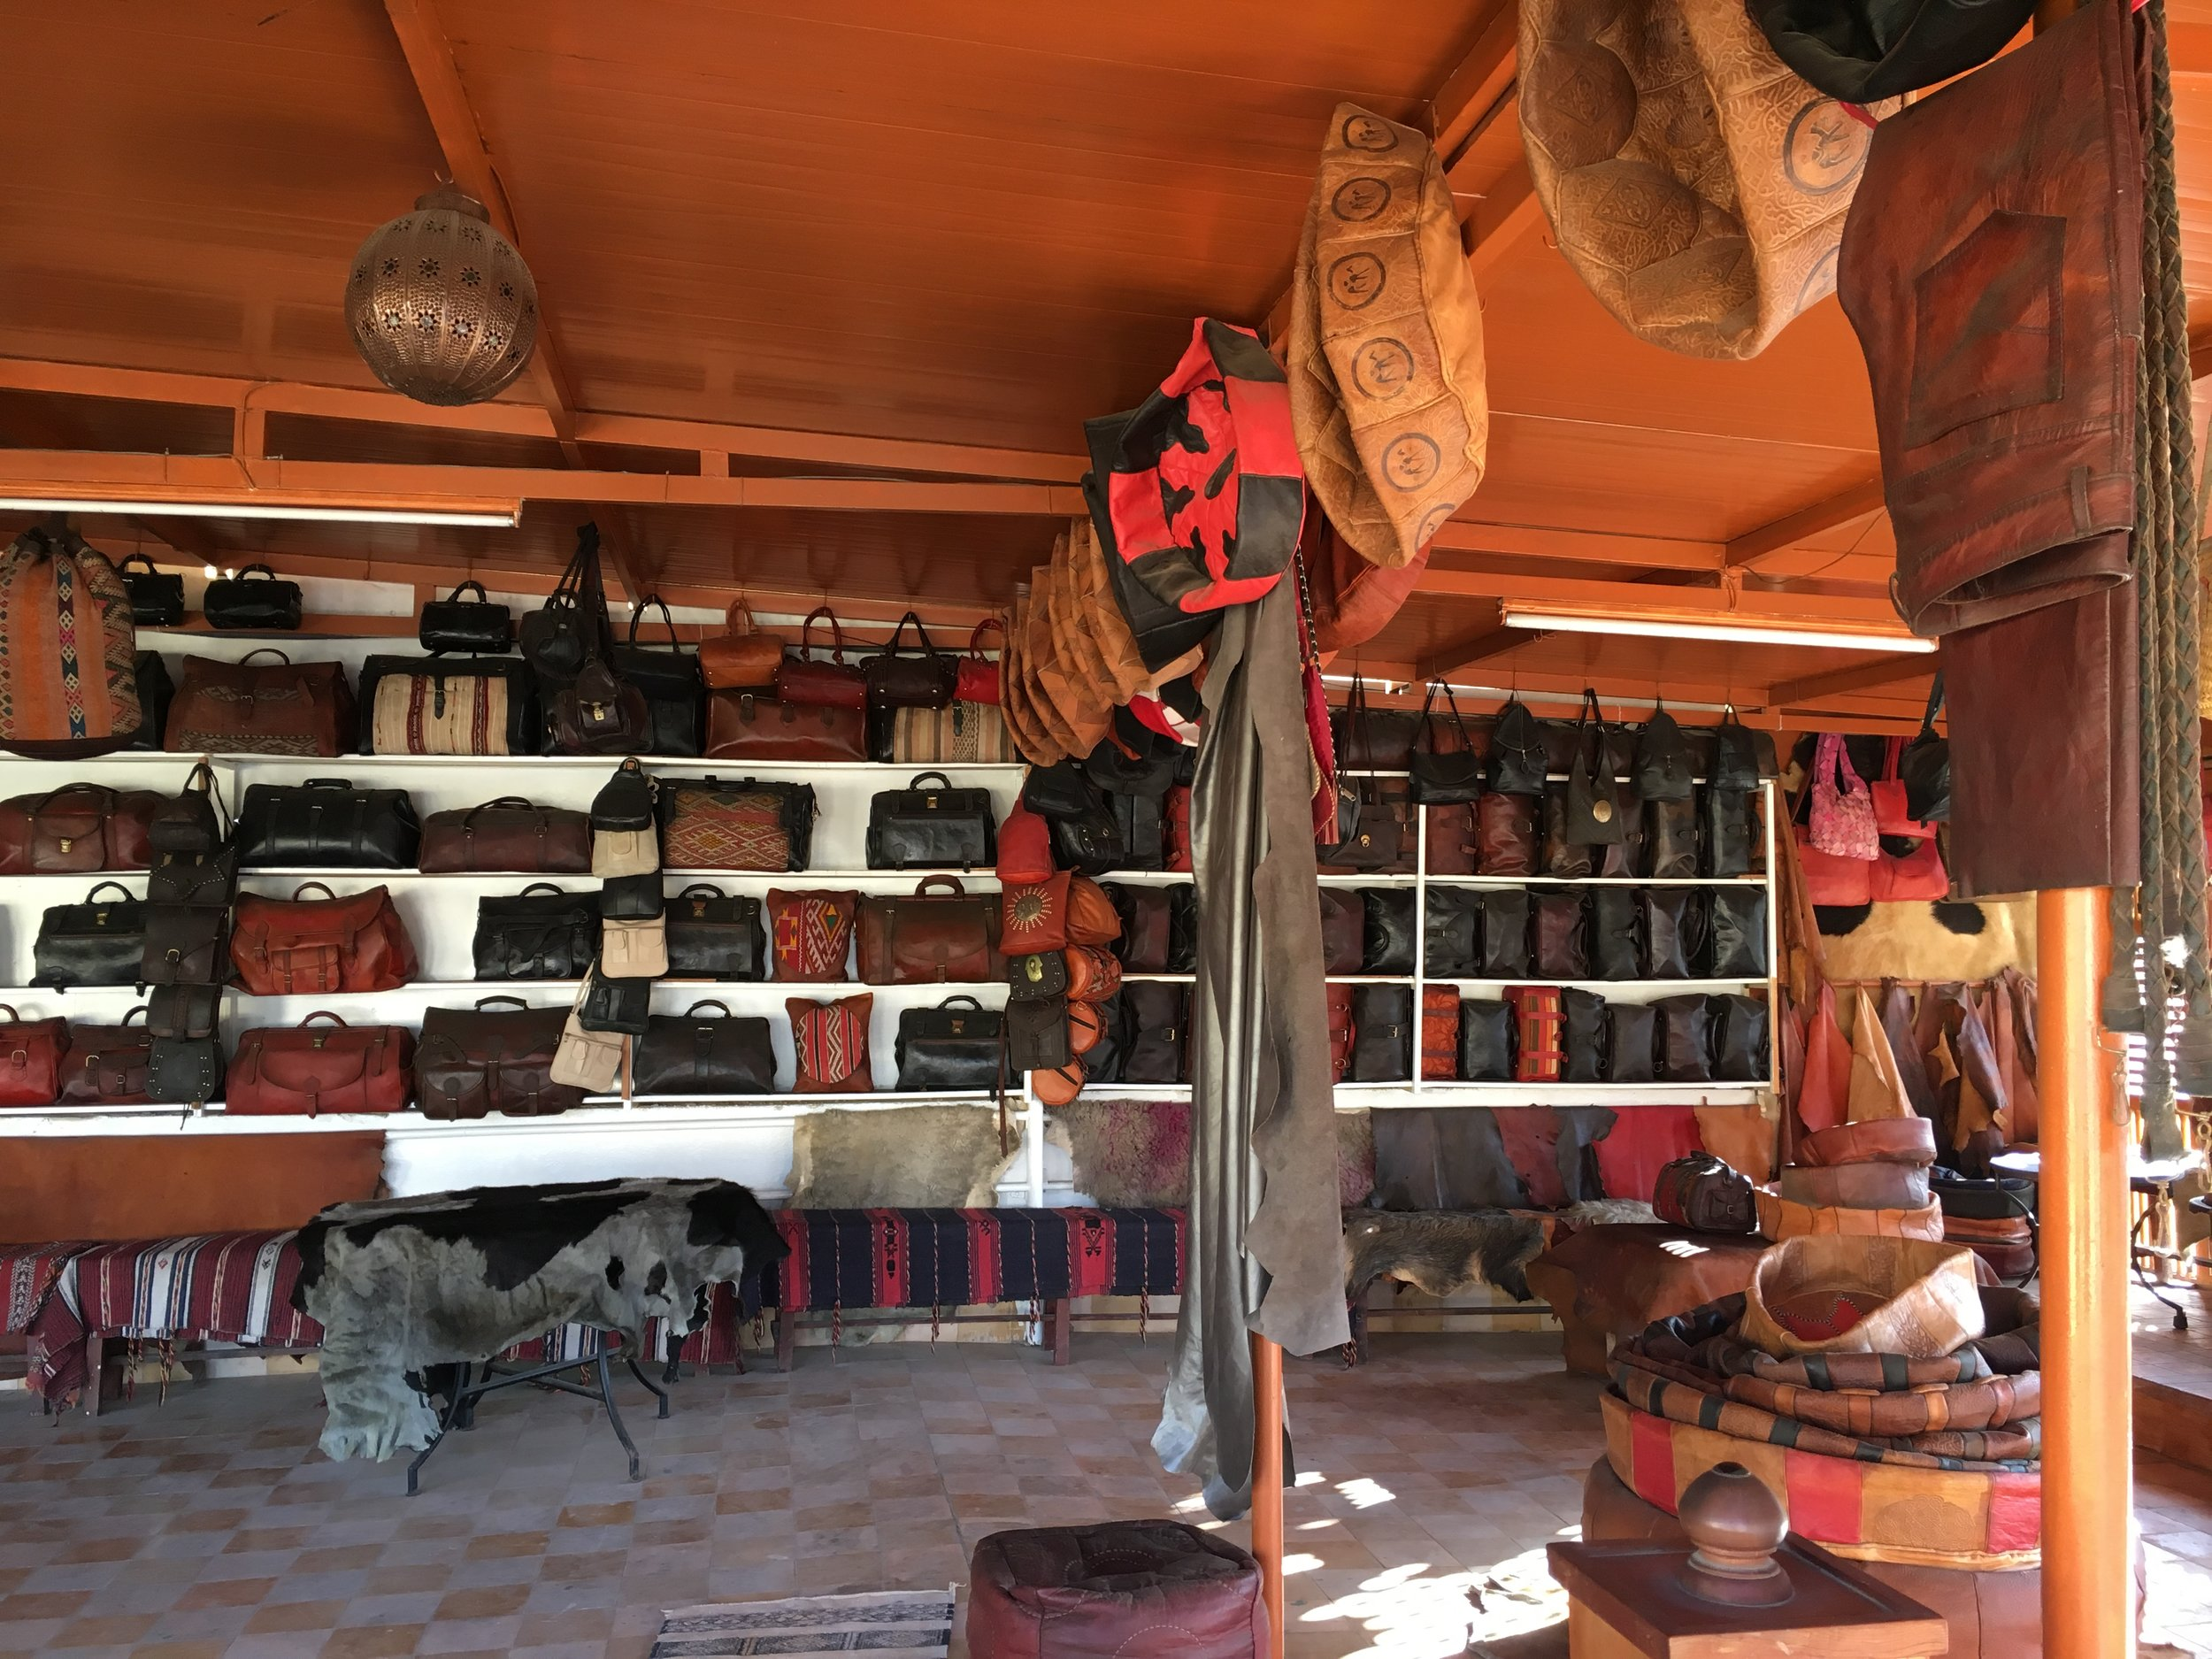 Dozens of shops sell handcrafted leather goods and each of the viewing balconies over the tanneries has its own boutique filled with purses, coats, shoes, wallets, and cushions.